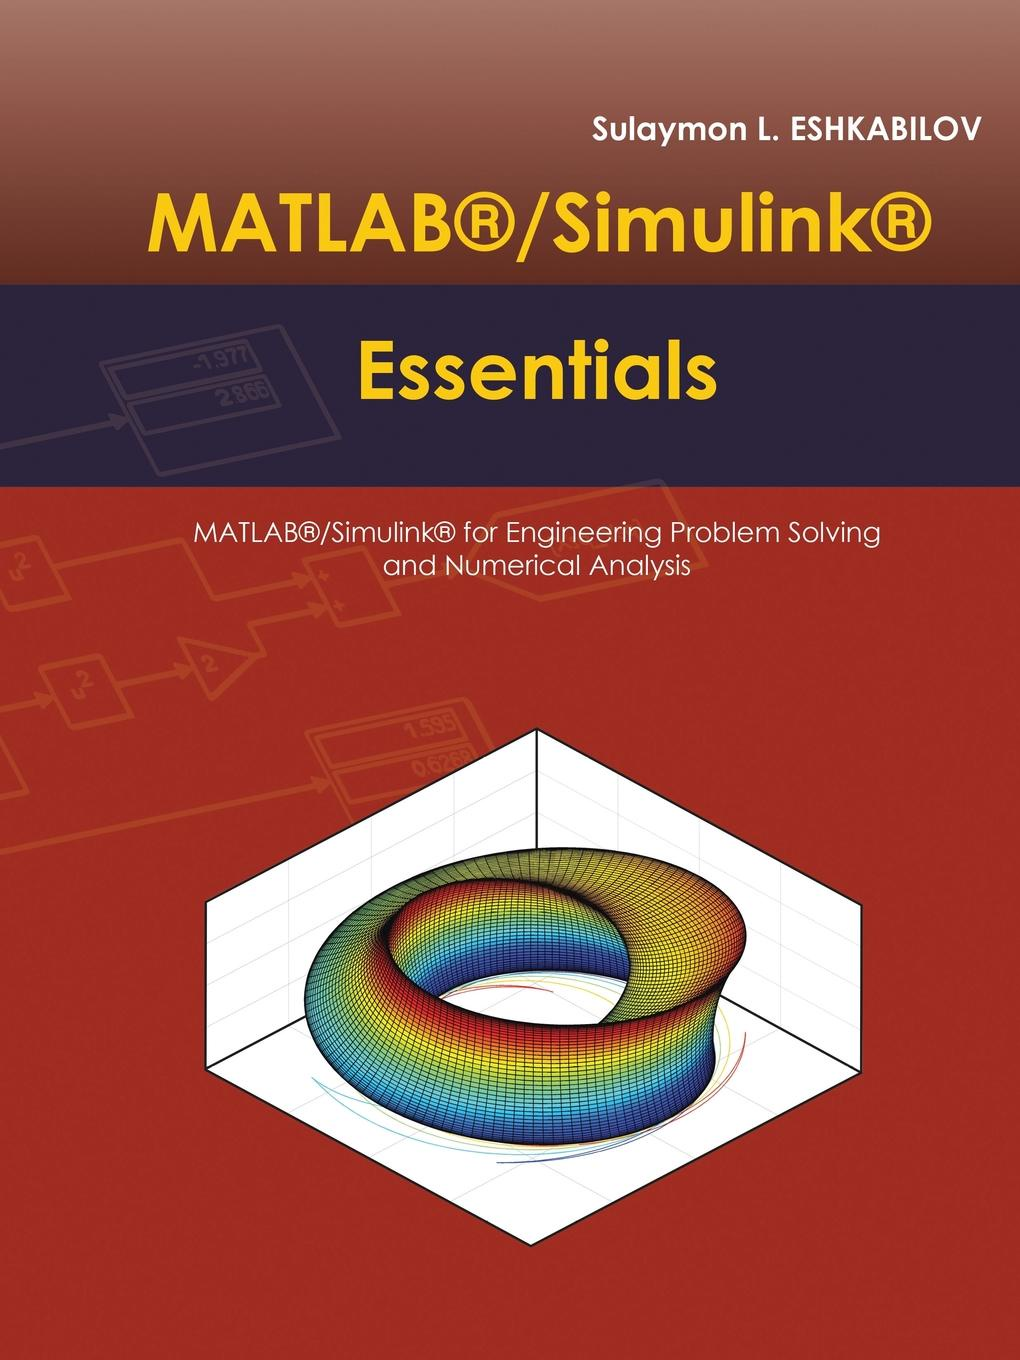 Sulaymon L. Eshkabilov MATLAB./Simulink. Essentials. MATLAB./Simulink. for Engineering Problem Solving and Numerical Analysis huaping liu problem based learning in communication systems using matlab and simulink